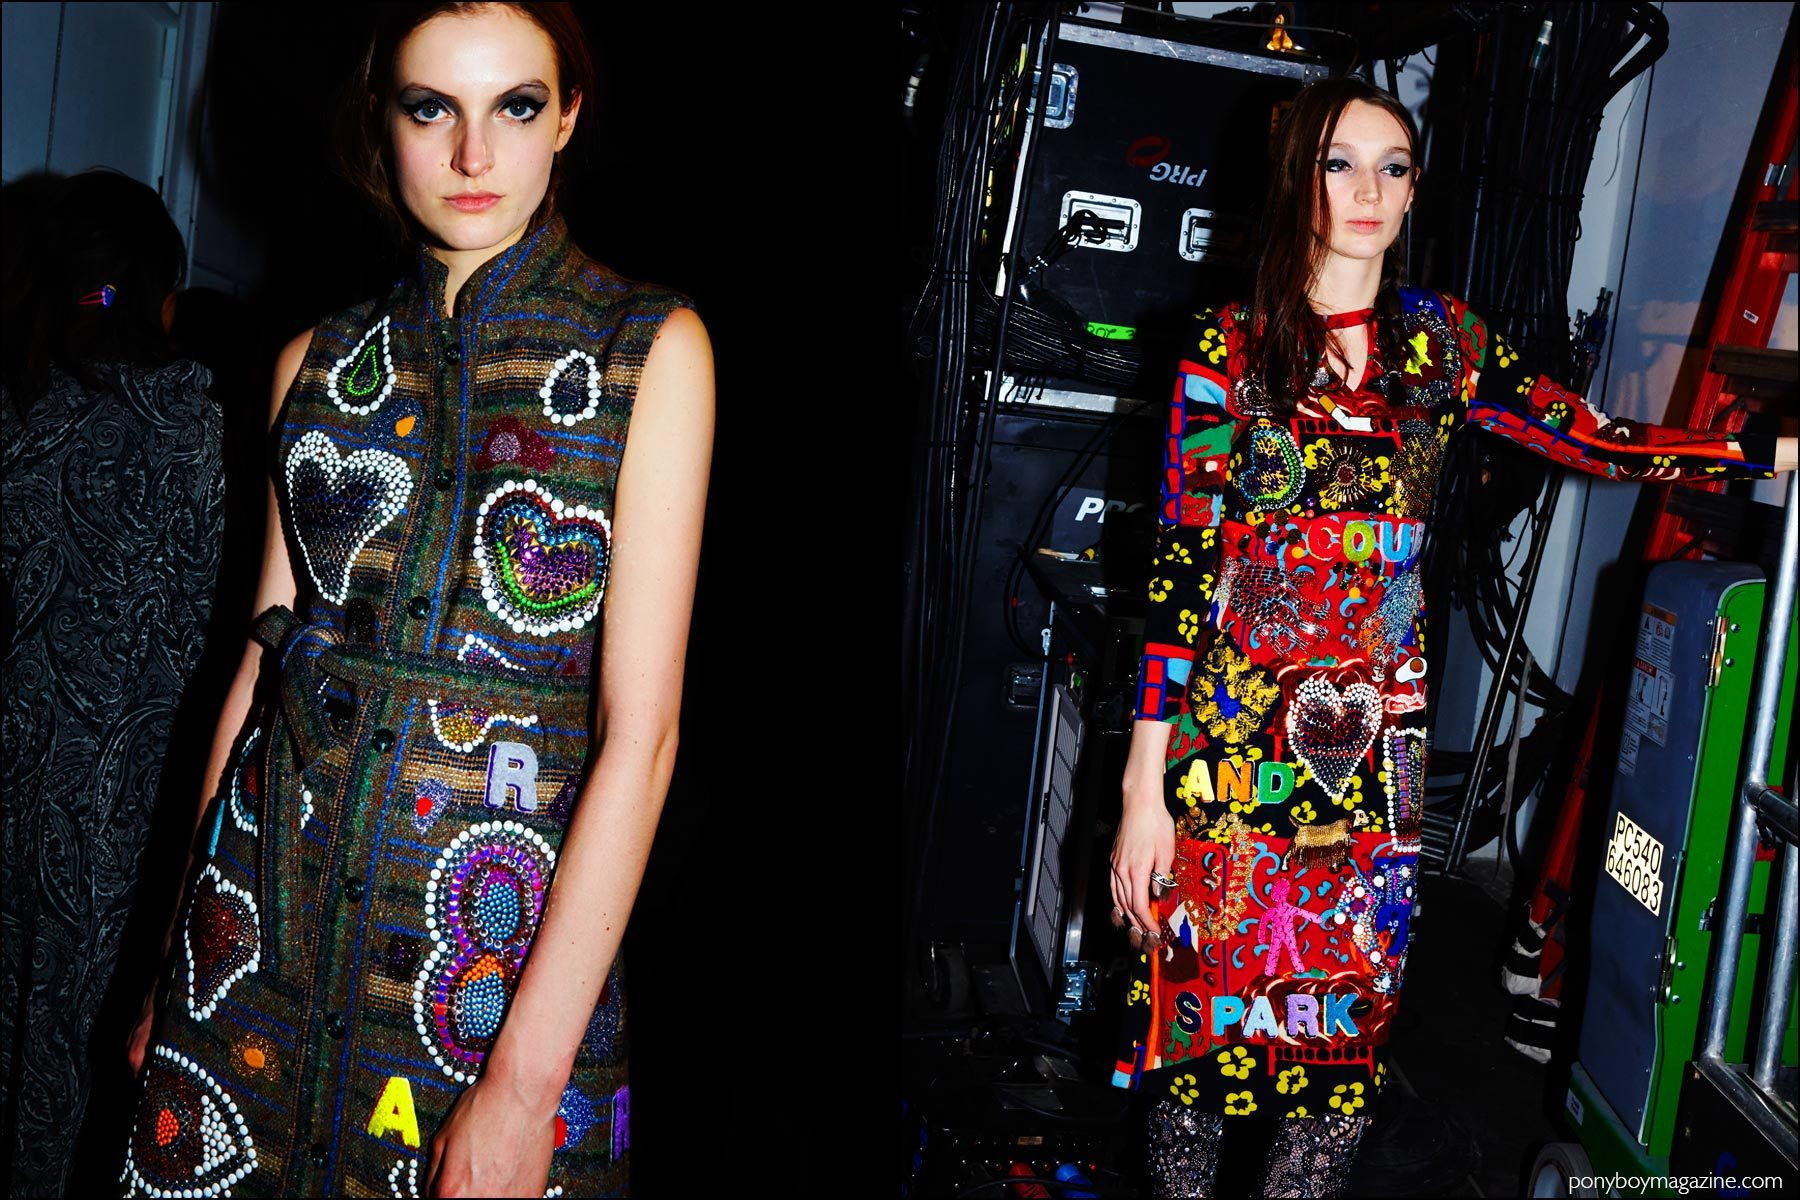 Models wear colorful embellished dresses backstage at the Libertine Fall/Winter 2016 show. Photographs by Alexander Thompson for Ponyboy magazine NY.